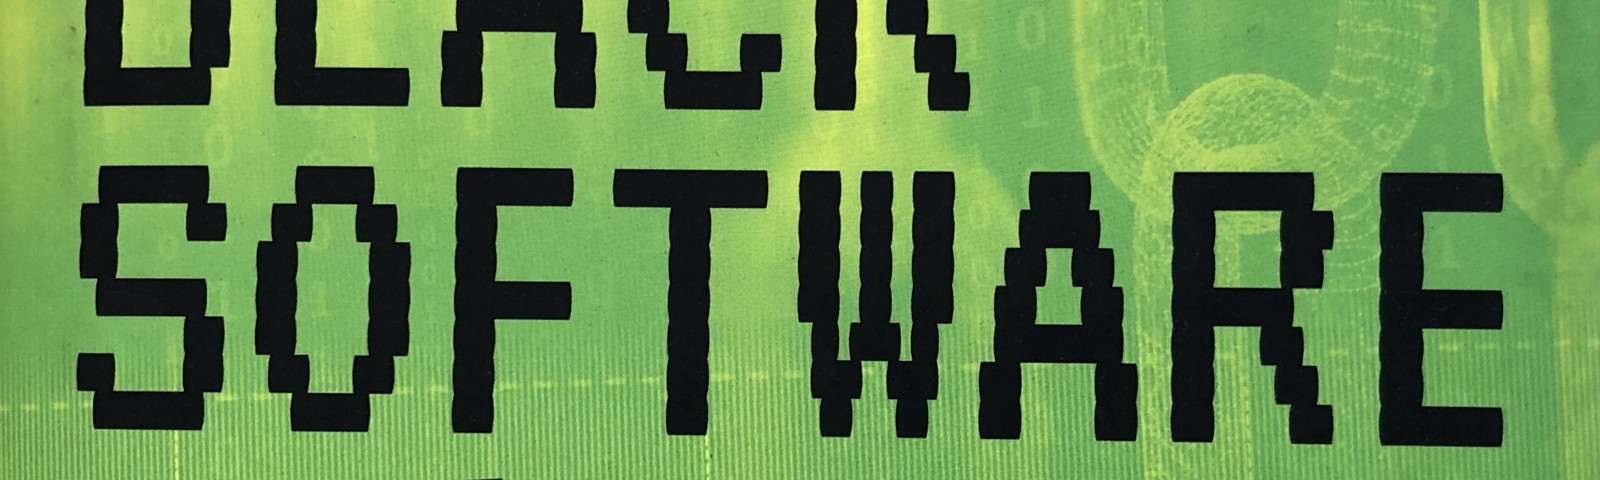 """The top of the cover of McIlwain's book, showing the title """"BLACK SOFTWARE"""" and a pixelated fist."""